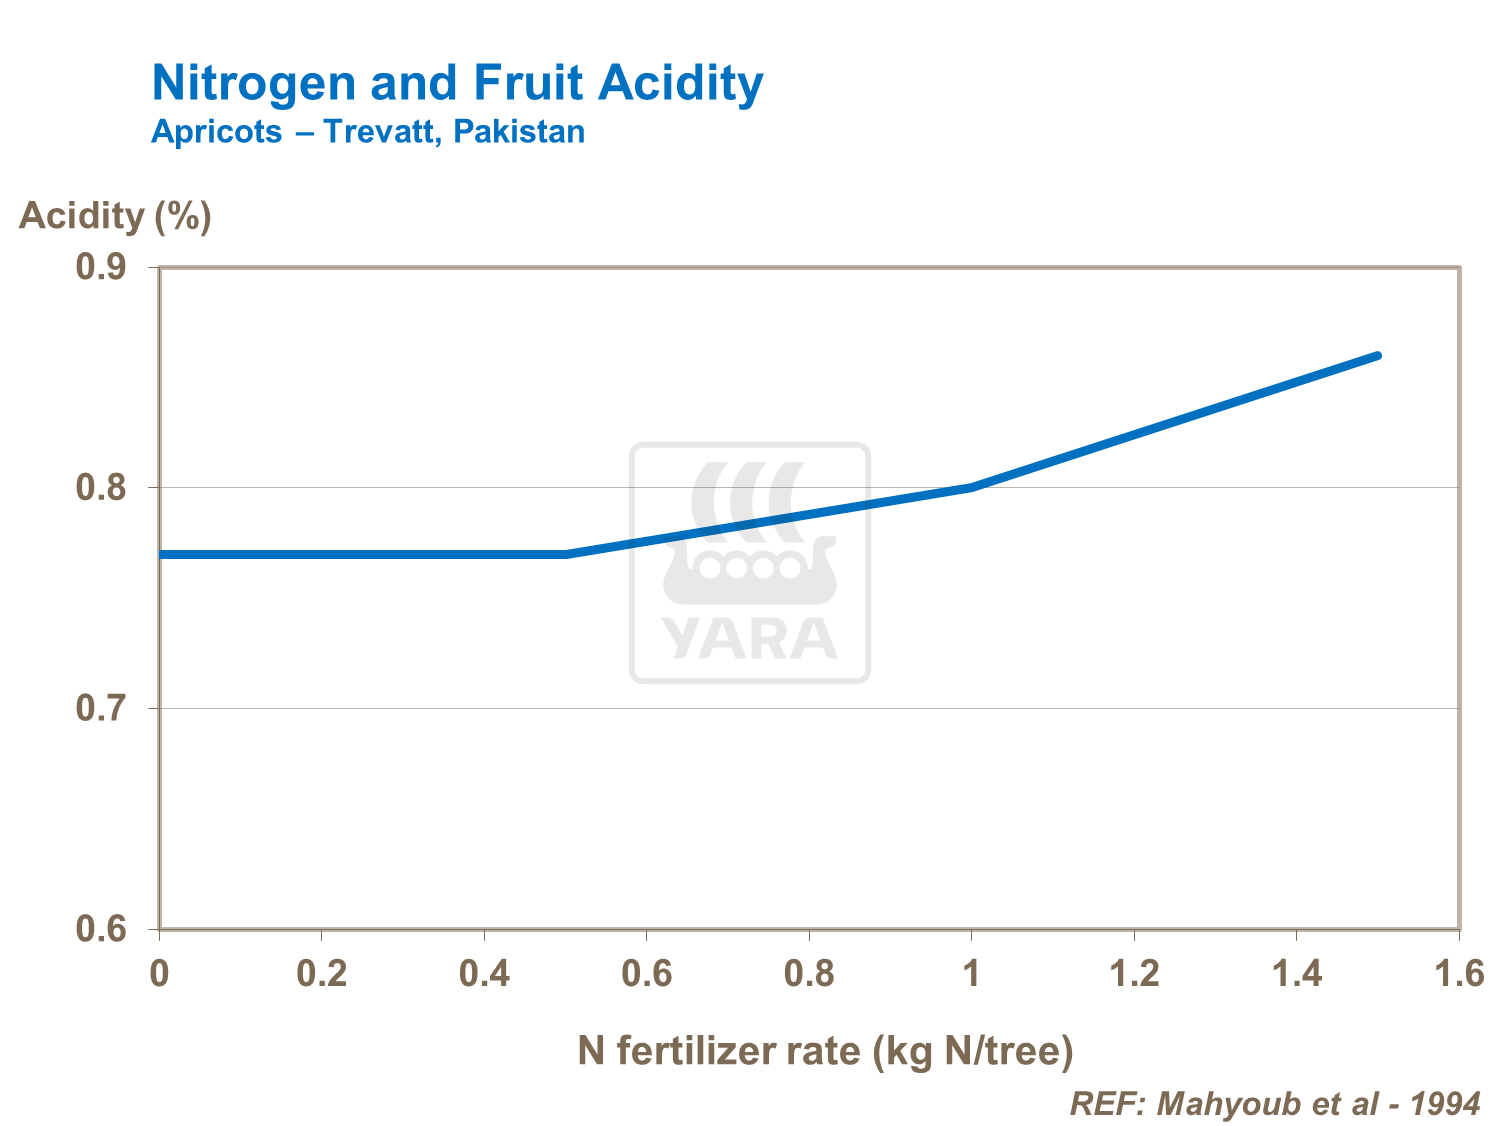 Effect of nitrogen on apricot acidity